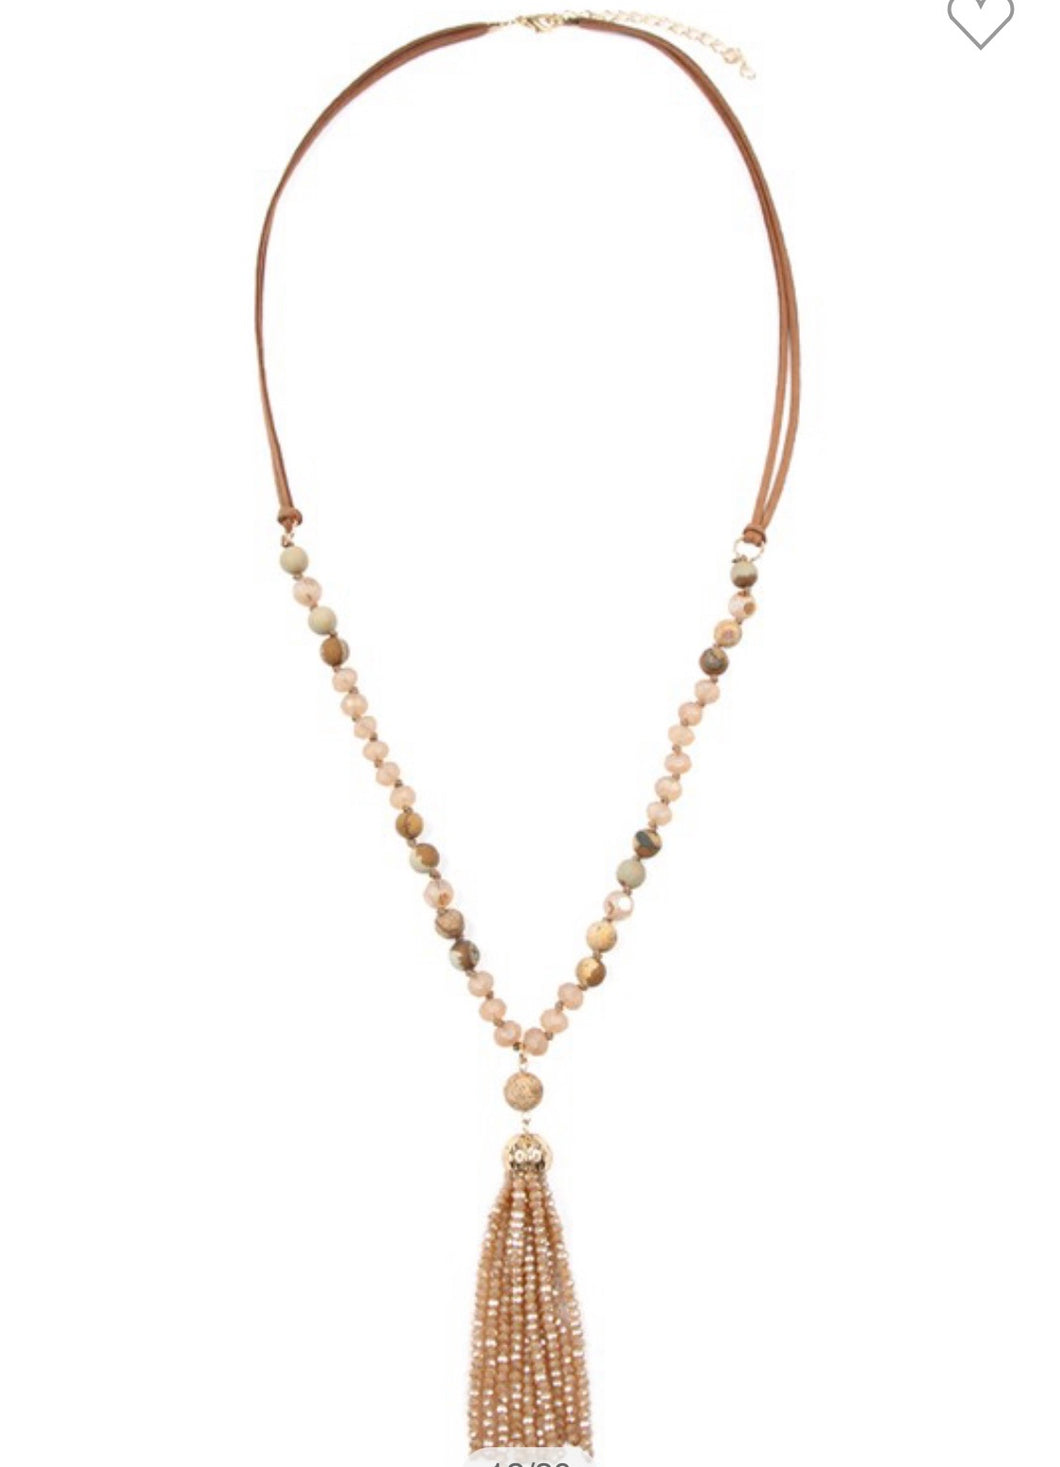 RONDELLE TASSEL PENDANT WITH POLYCORD NECKLACE